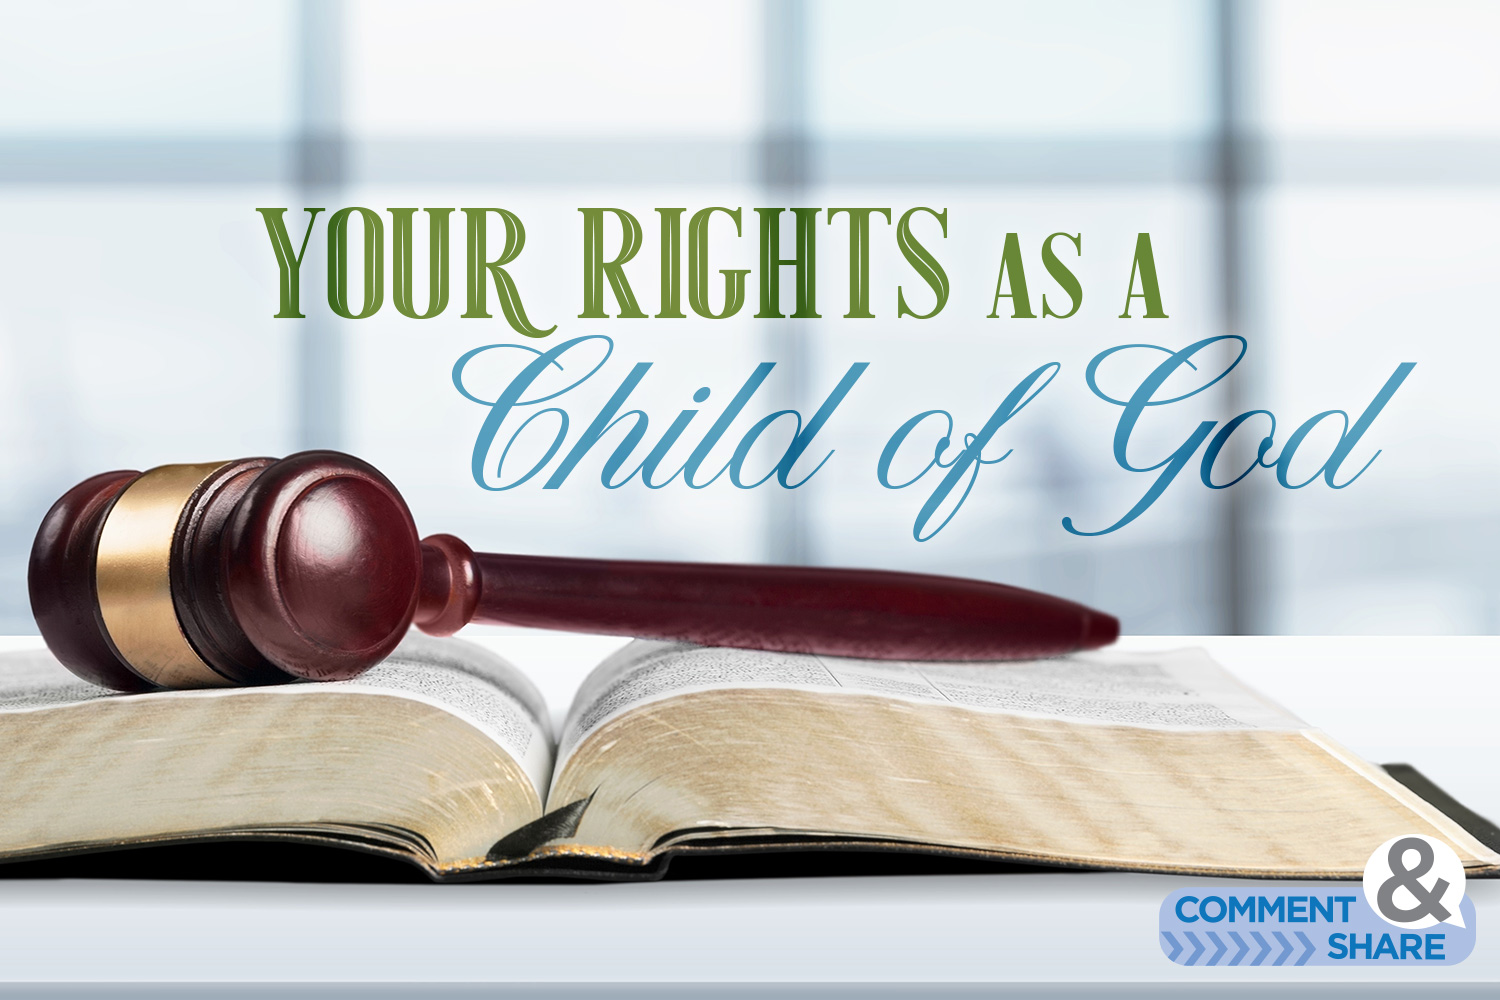 Your Rights As a Child of God